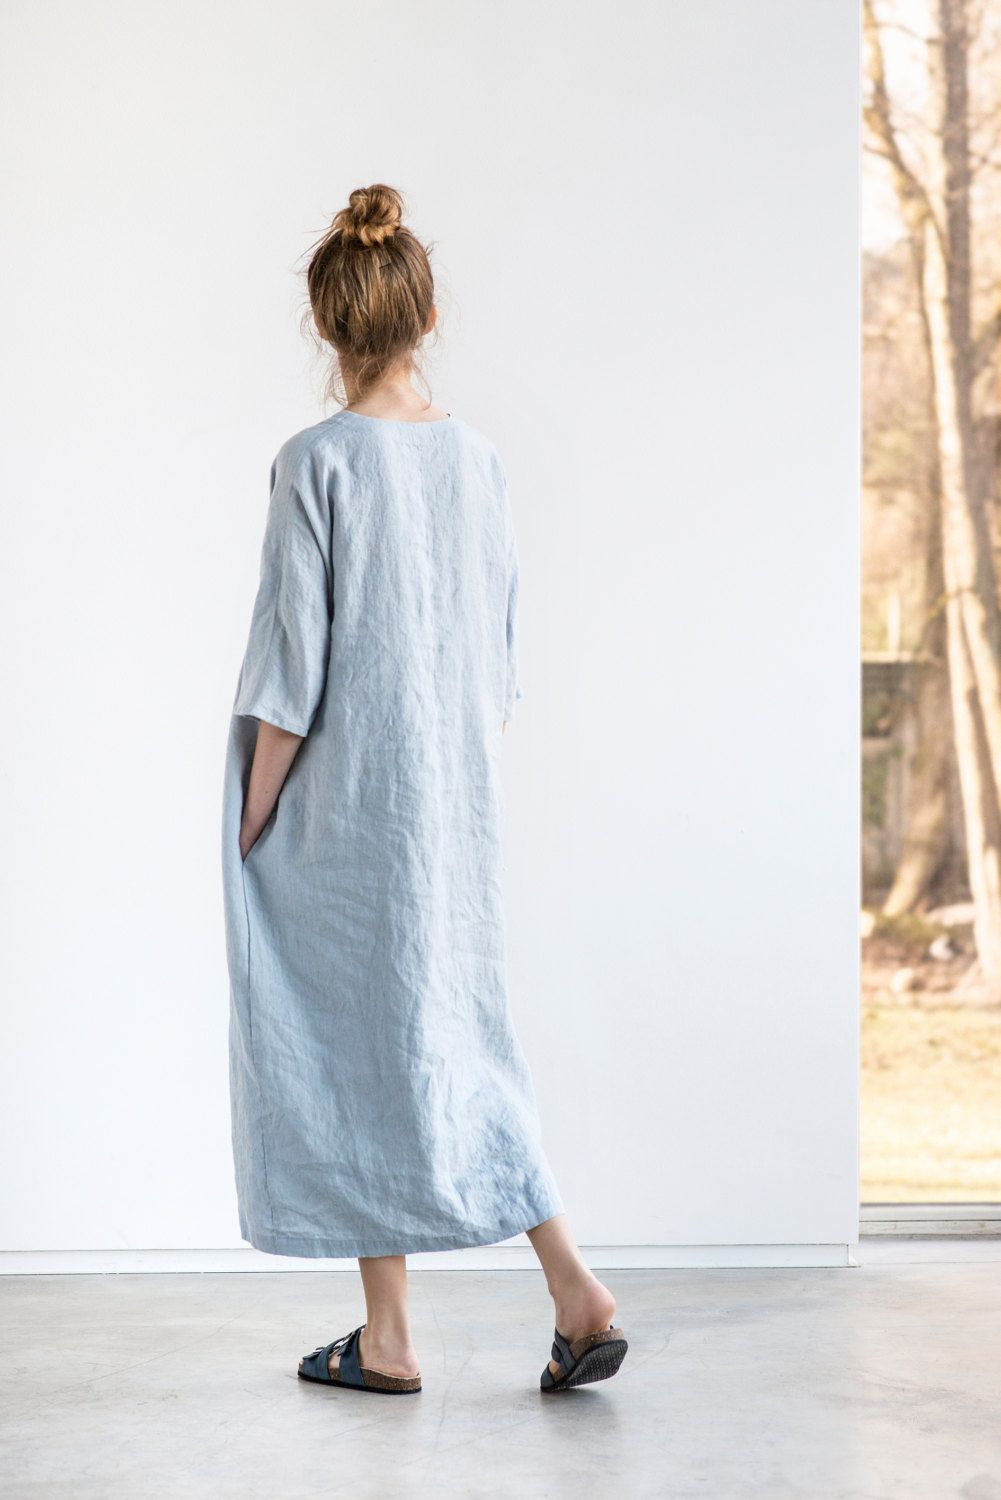 Jual Full Length Terry Cloth Robe For 3999 100 Cotton Update 2018 Floral Print Womenamp039s Bohemian Chiffon Long Maxi Floor Dress Washed Linen Kimono Tunic In Ice Blue Silver Grey Oversize